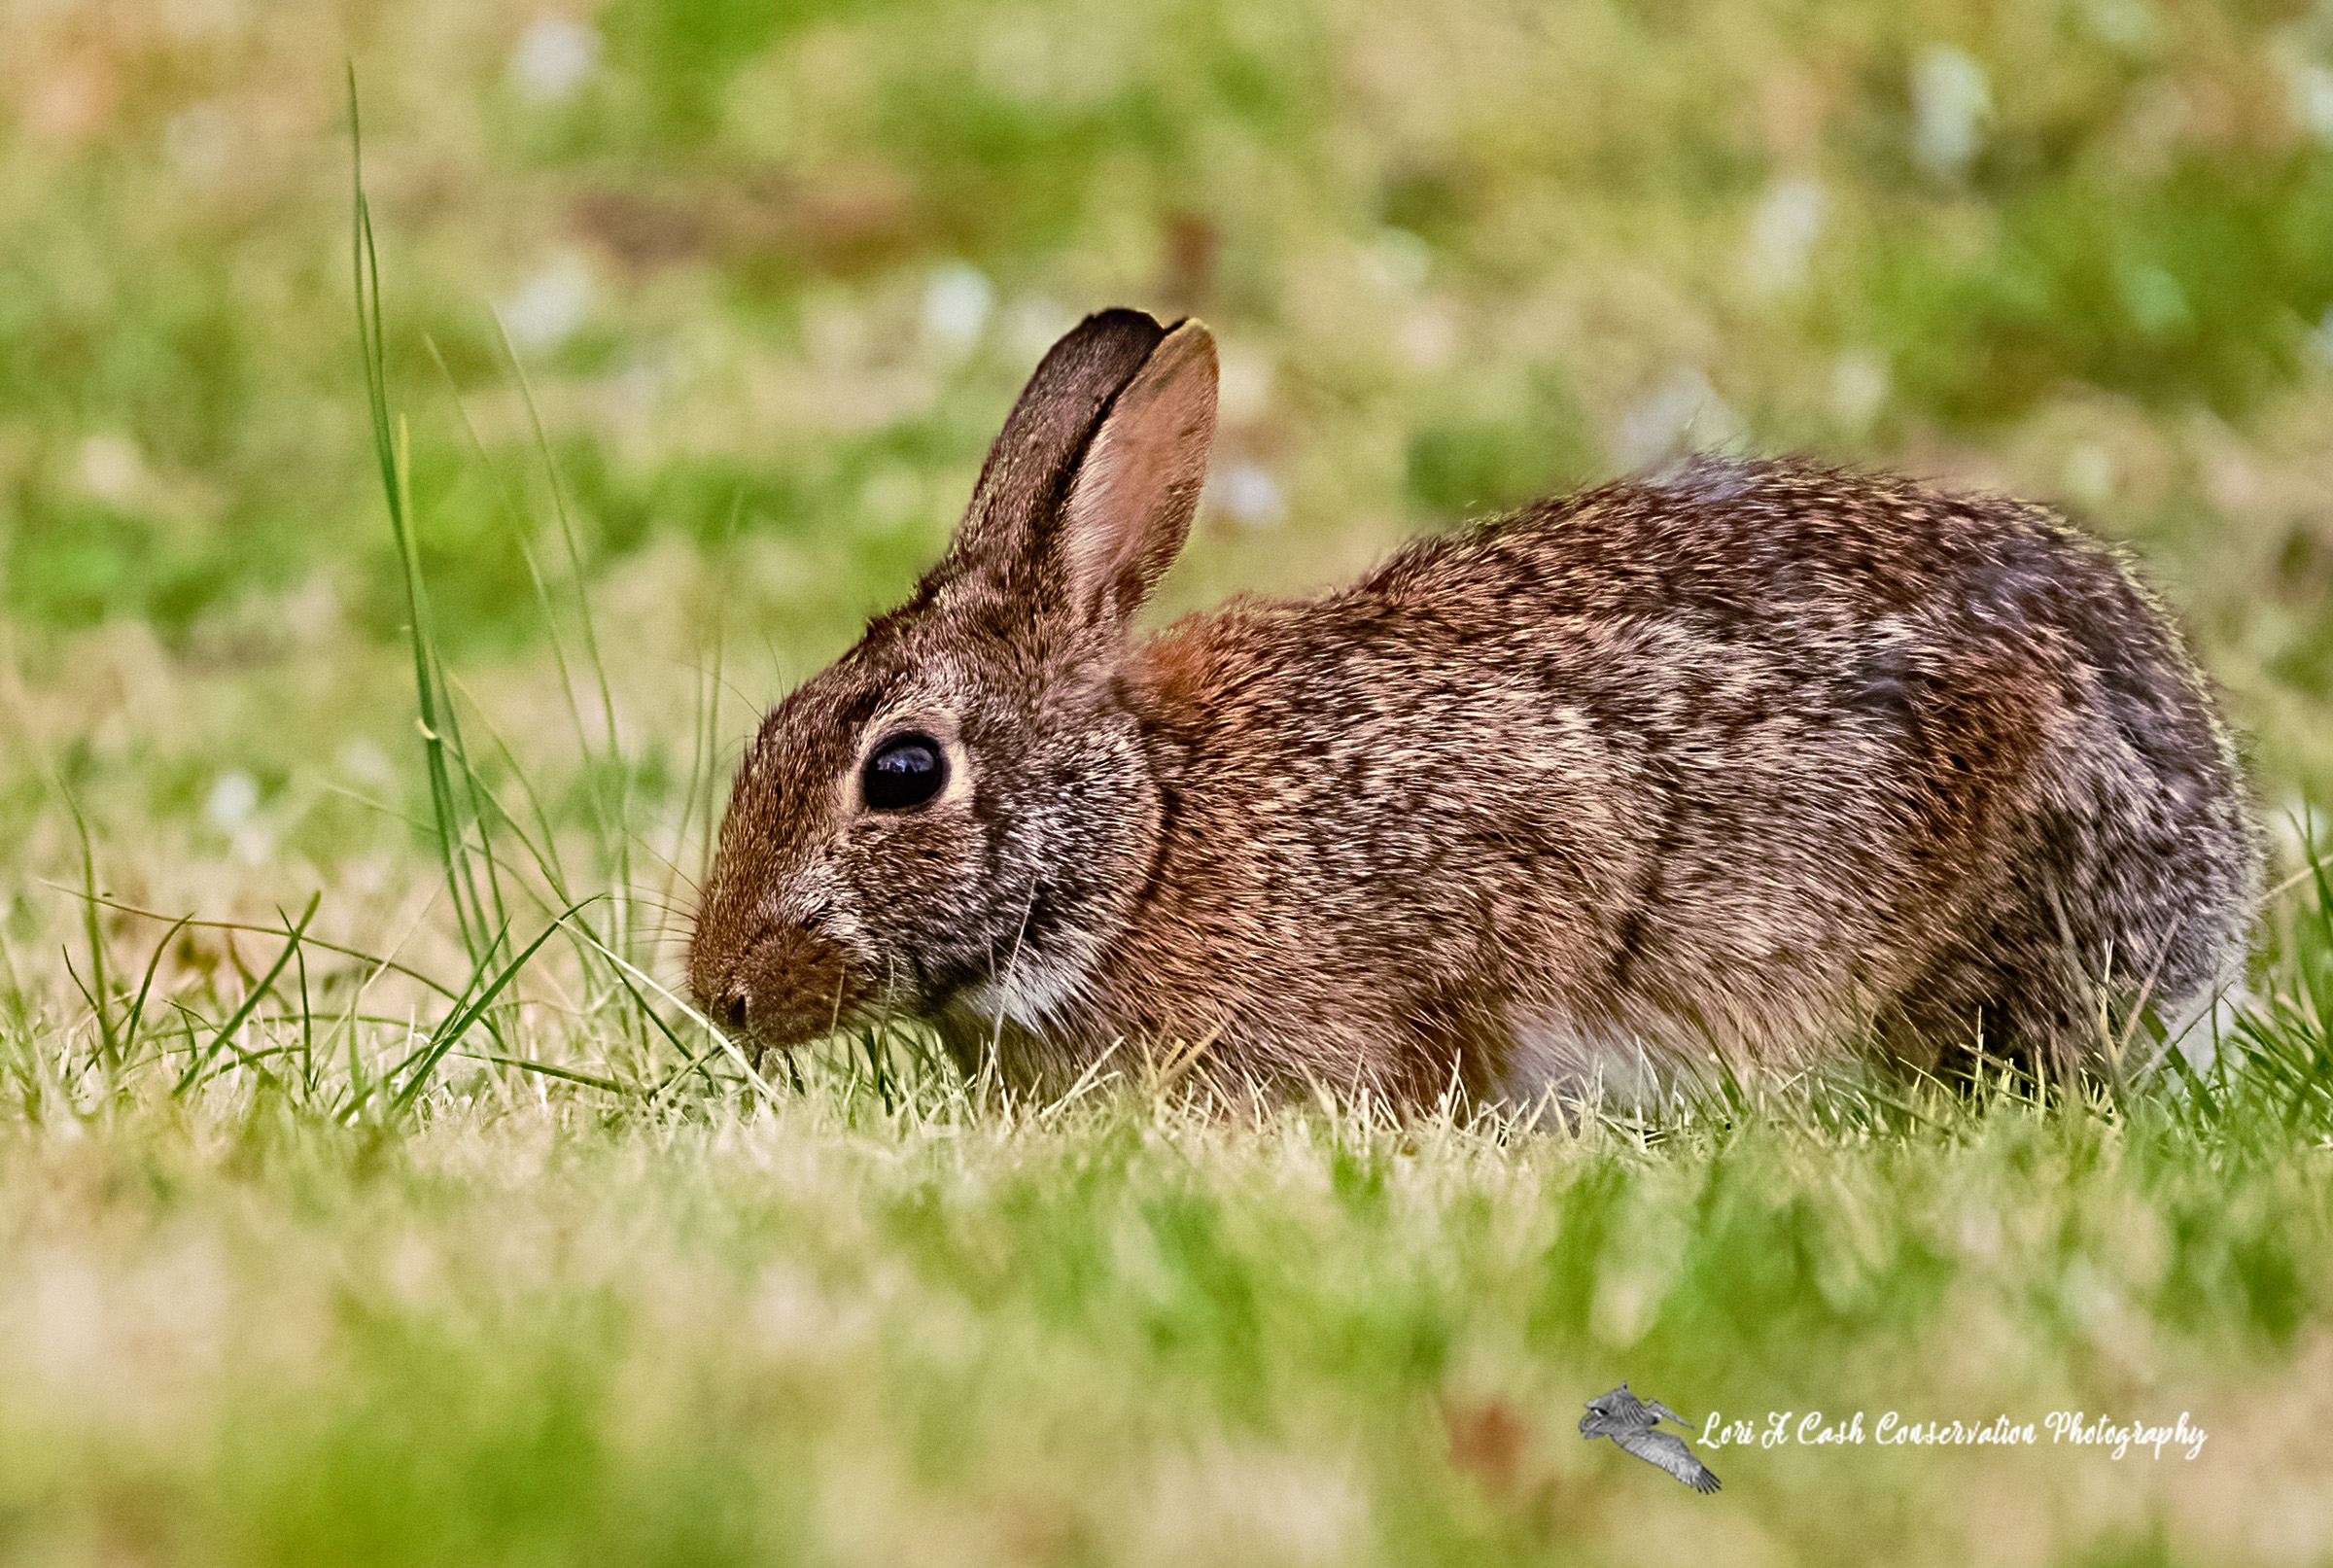 An Eastern Cottontail rabbit pausing from eating grass at Fort Monroe in Hampton, Virginia